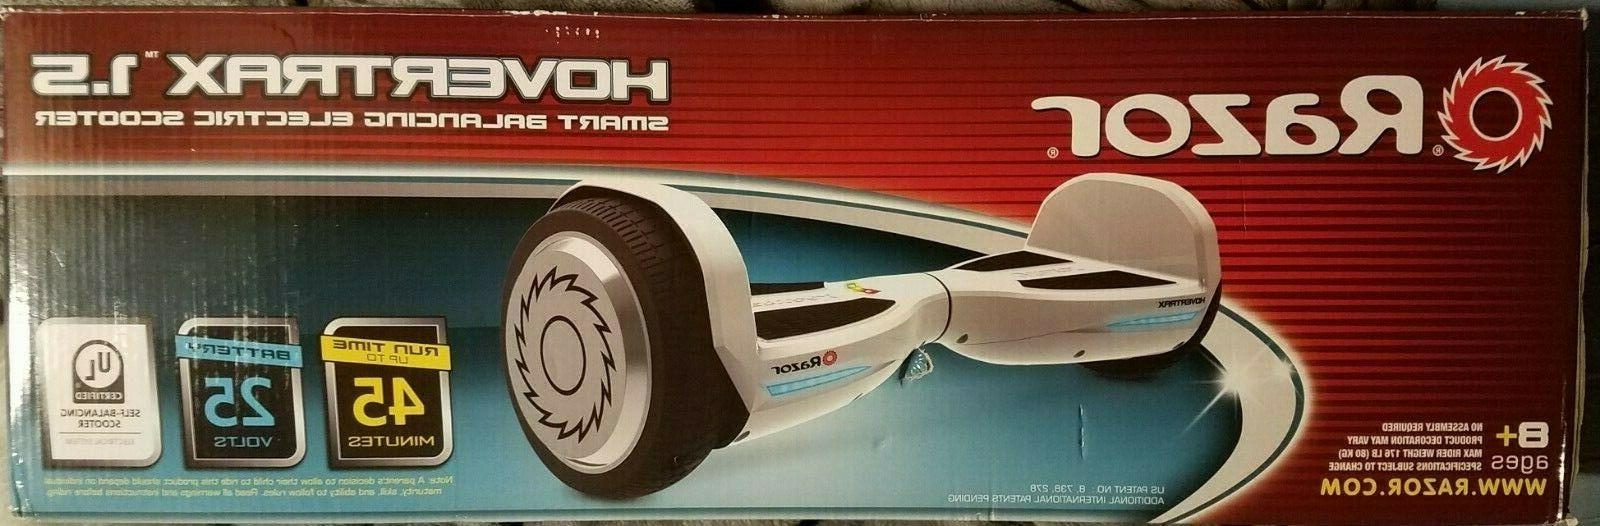 brand new hovertrax 1 5 ul2272 certified